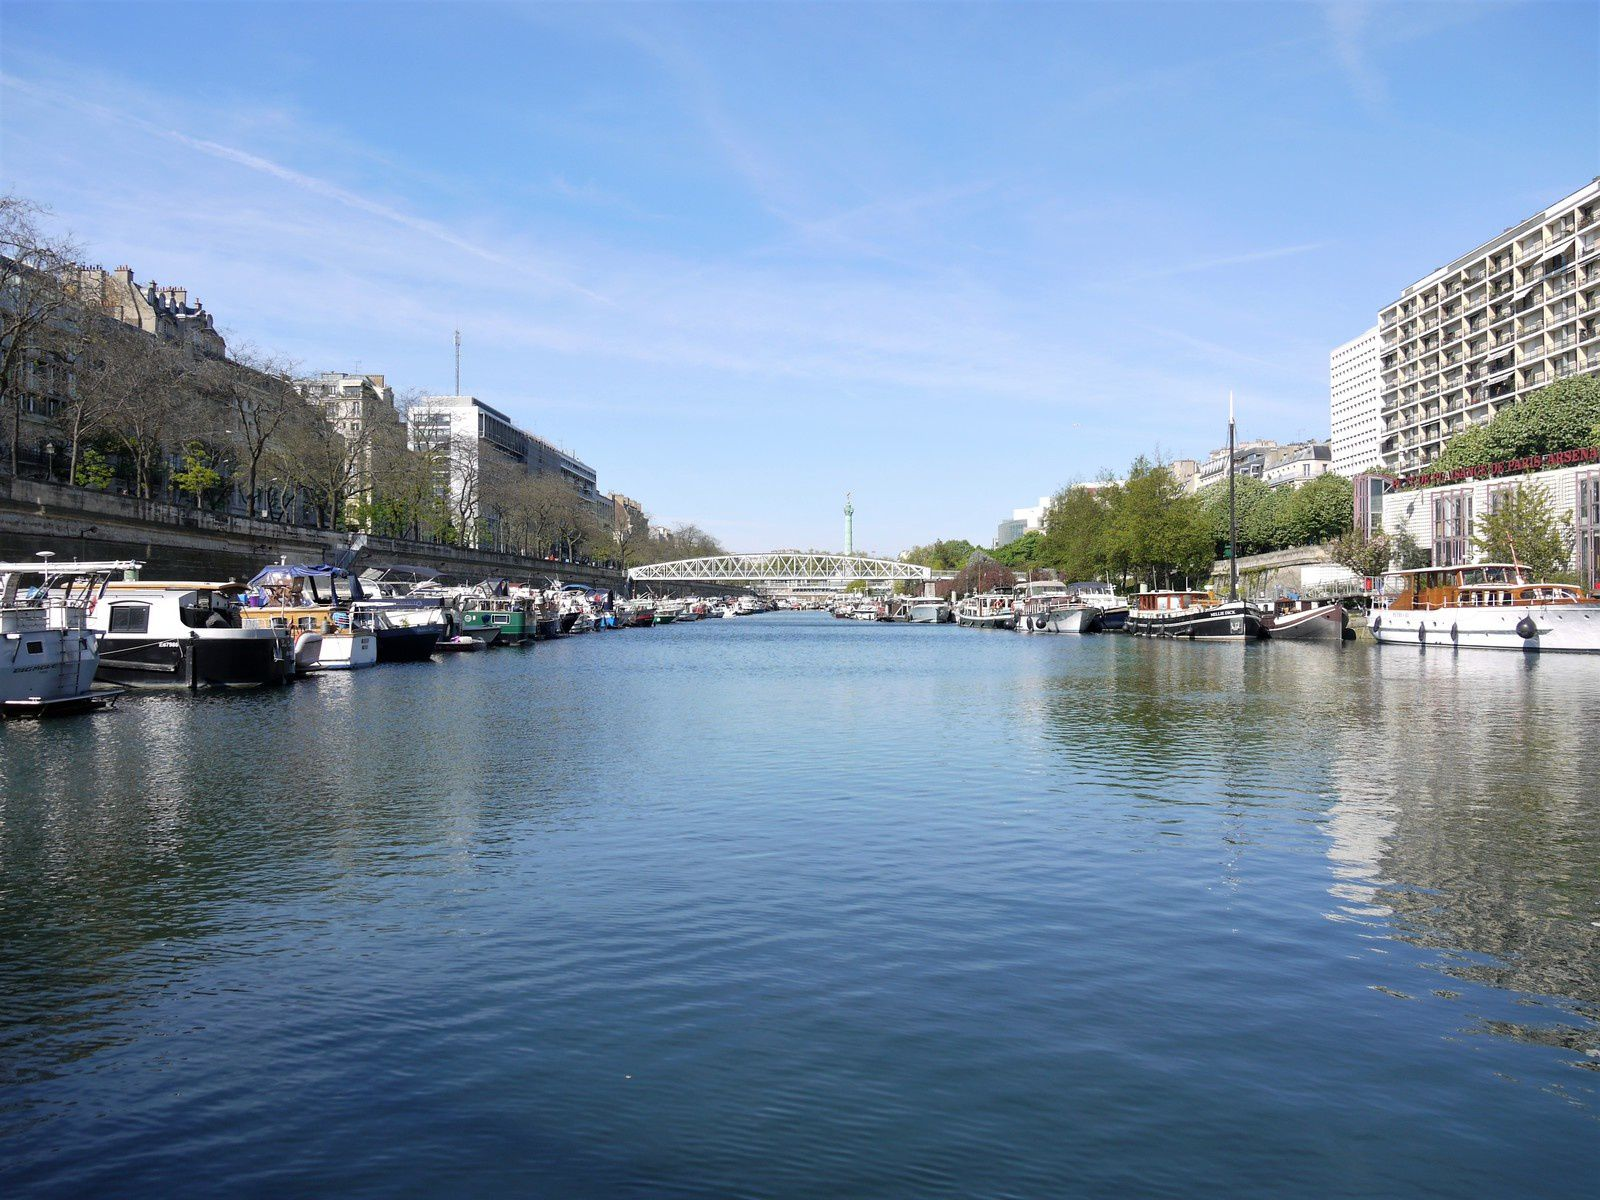 Le port de l'Arsenal à Bastille